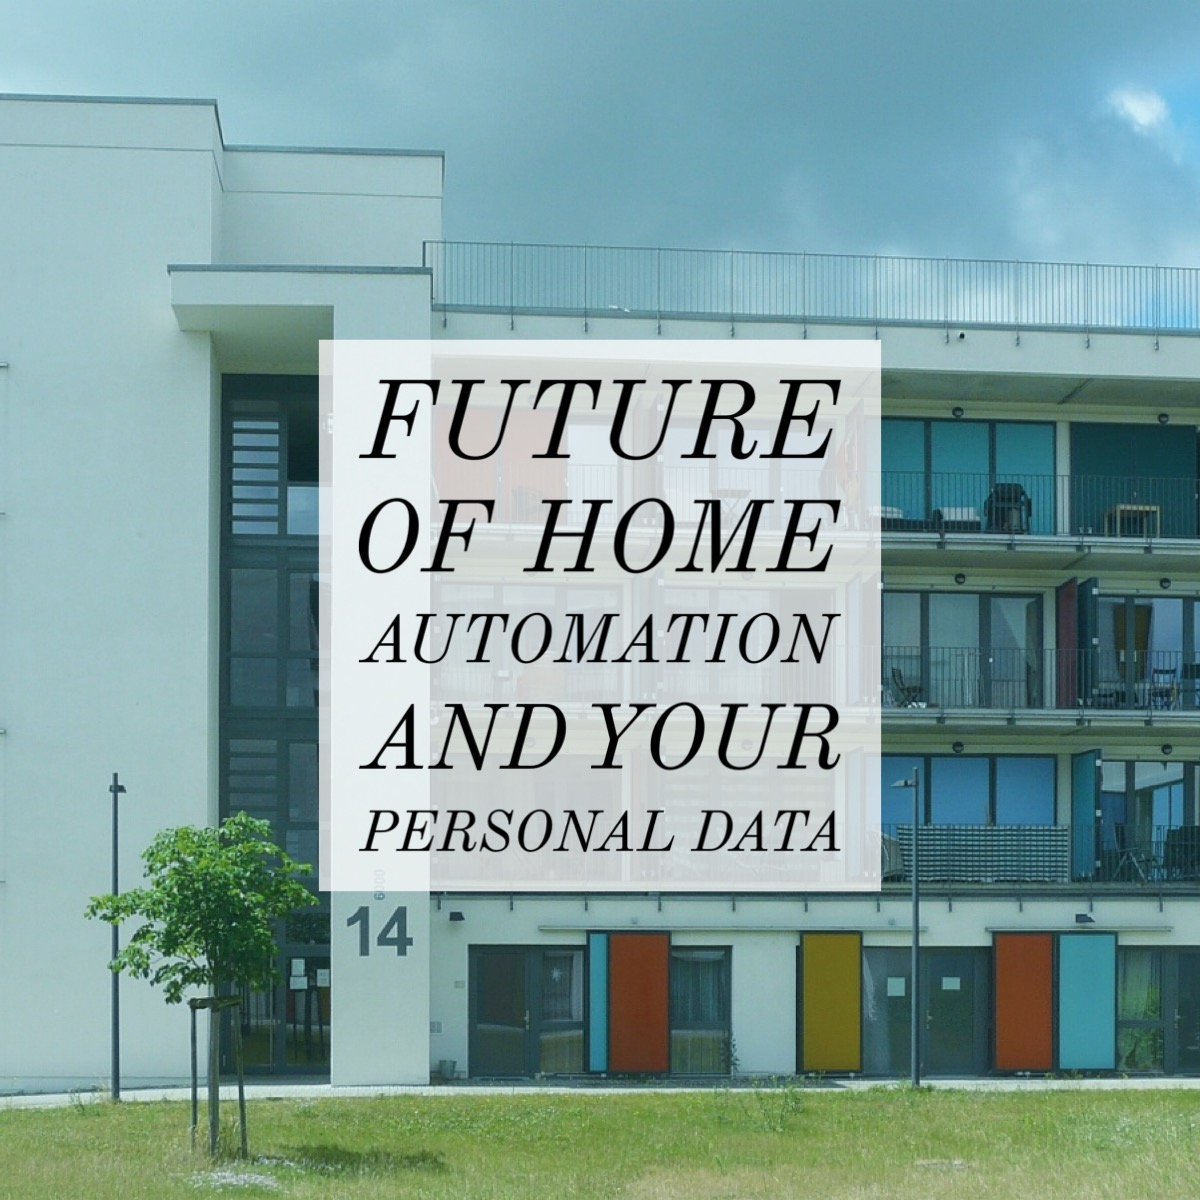 The Future of Home Automation & Your Personal Data - Meet ...